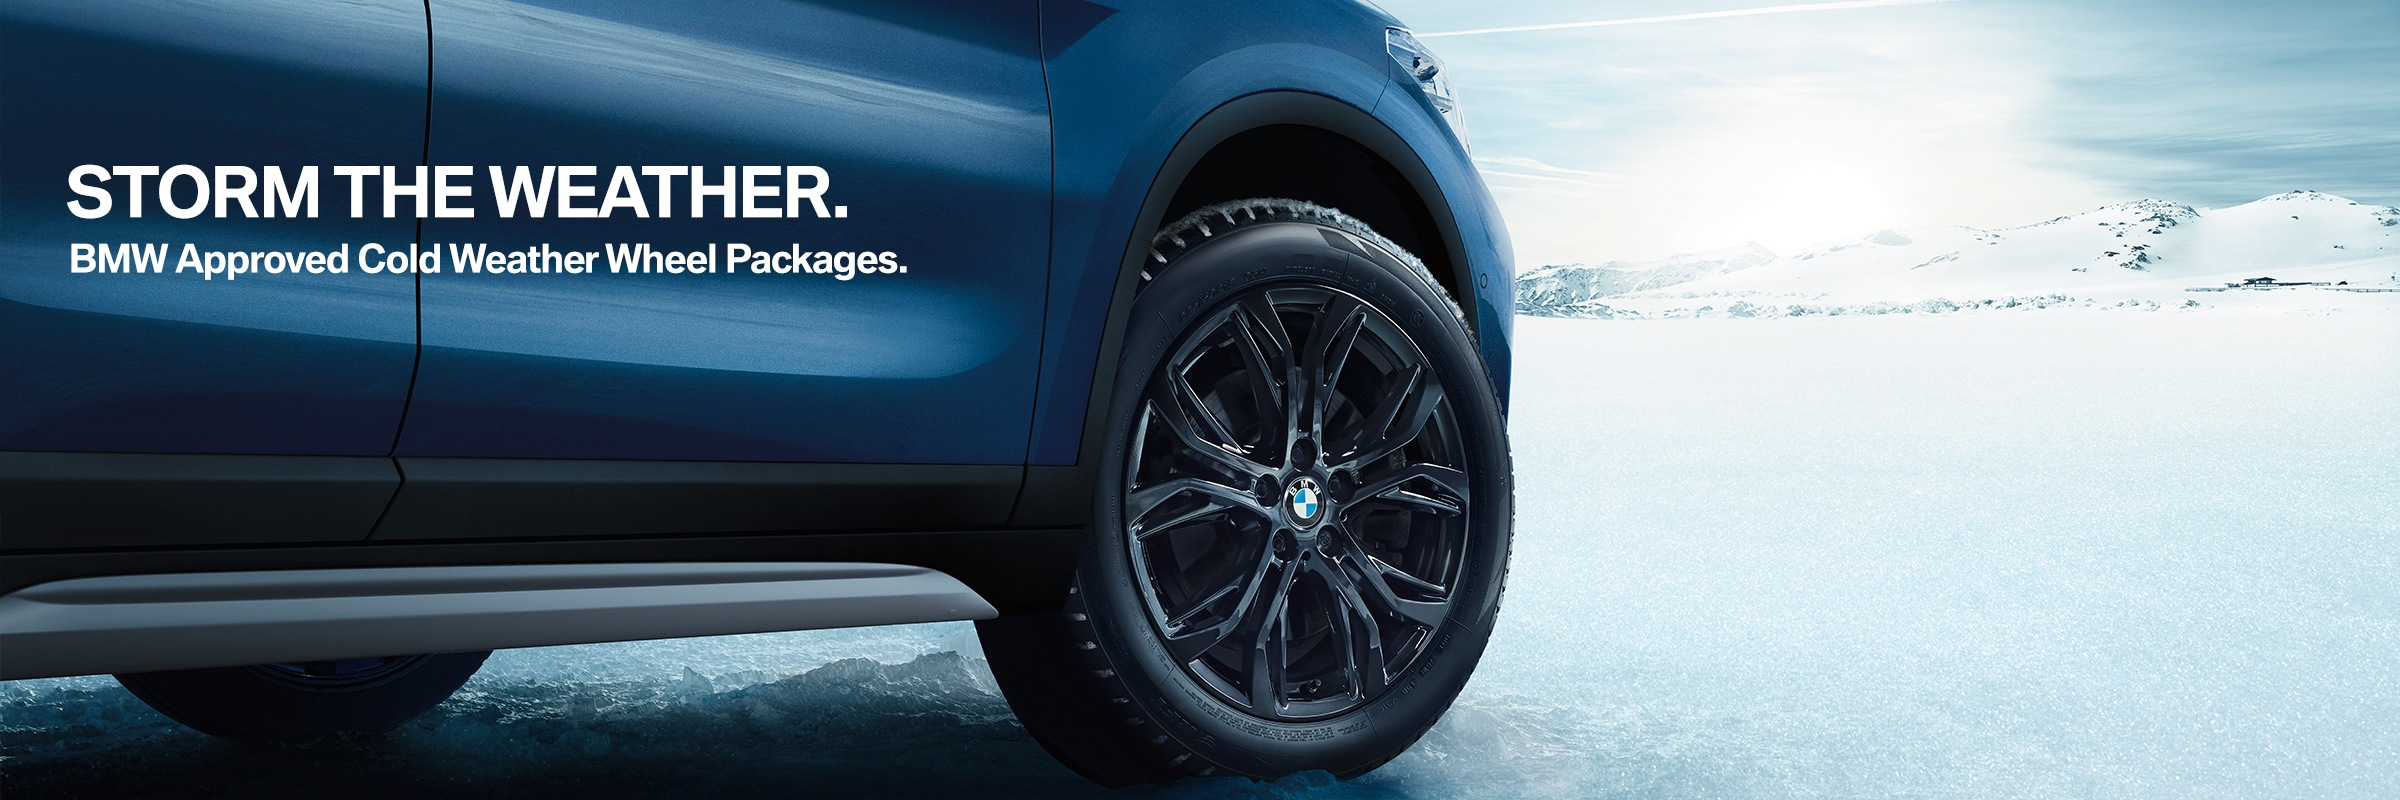 Bmw Cold Weather Wheel Packages Bmw Markham